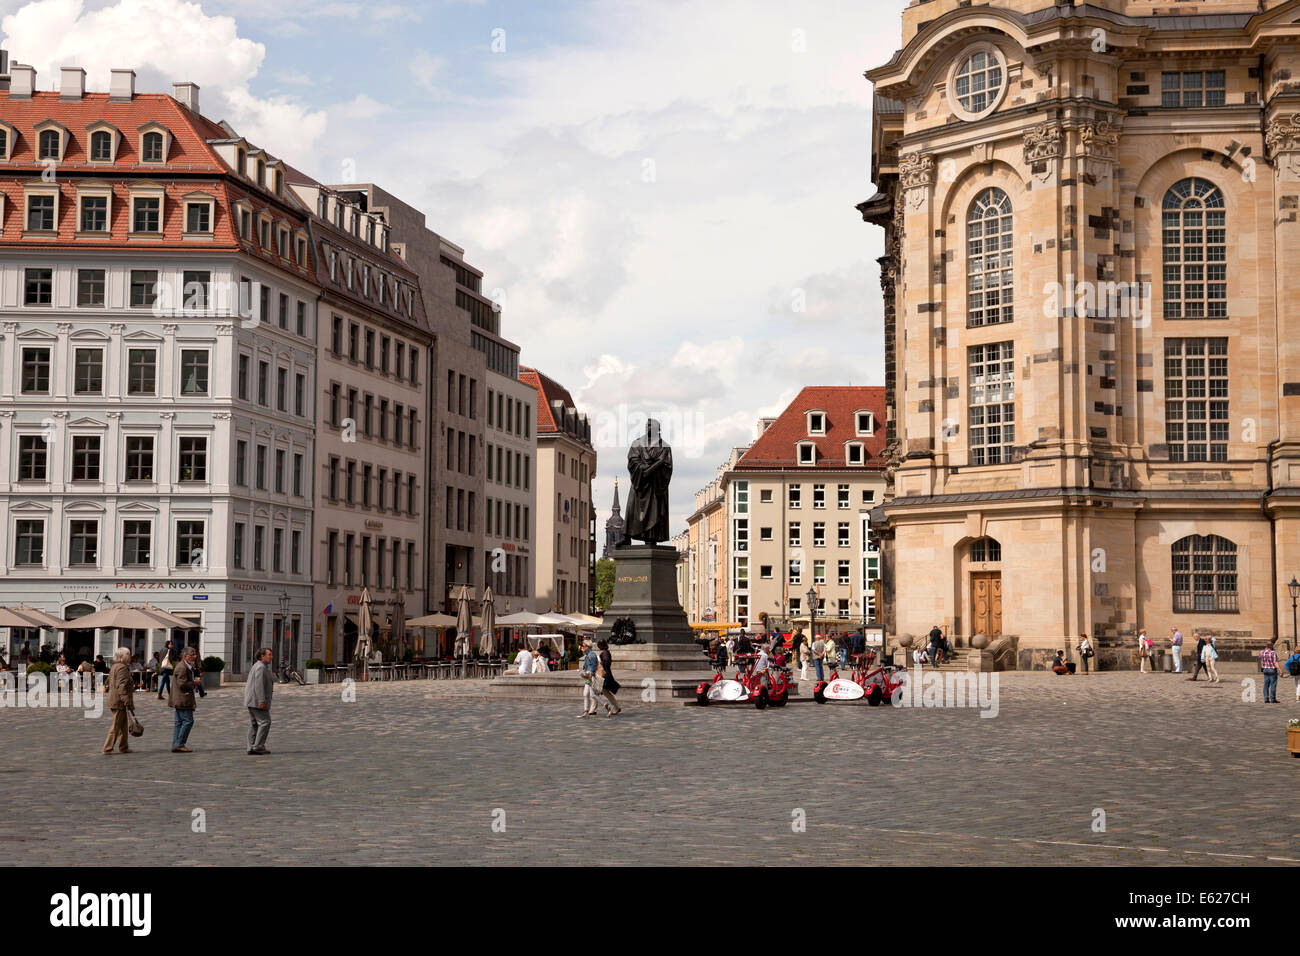 Martin Luther statue in front of the Frauenkirche  on  Neumarkt new market square  in Dresden, Saxony, Germany, Stock Photo